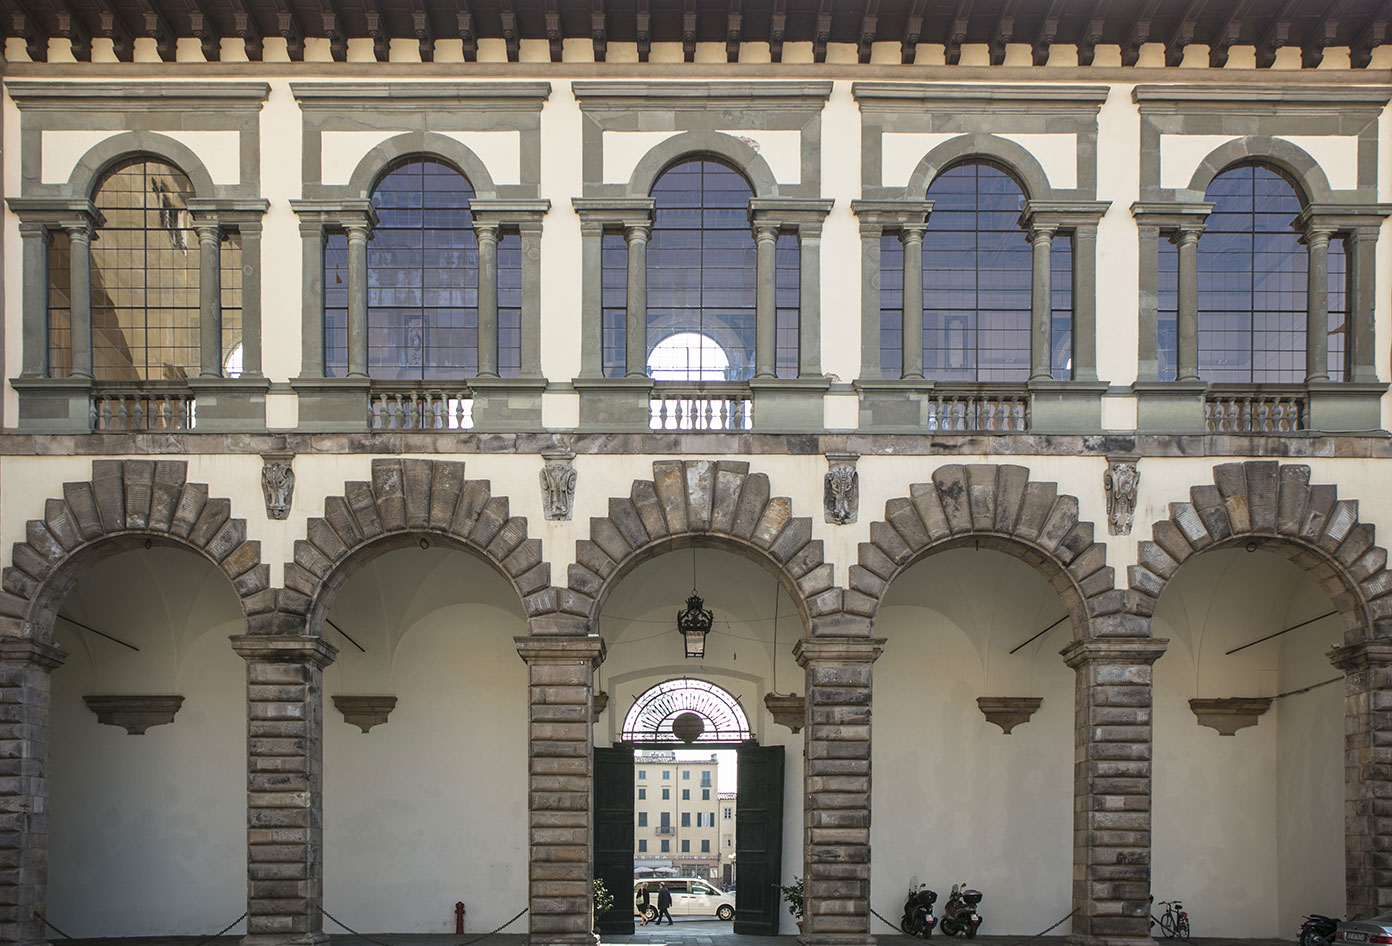 Ammannati Loggia's facade viewed from Cortile degli Svizzeri